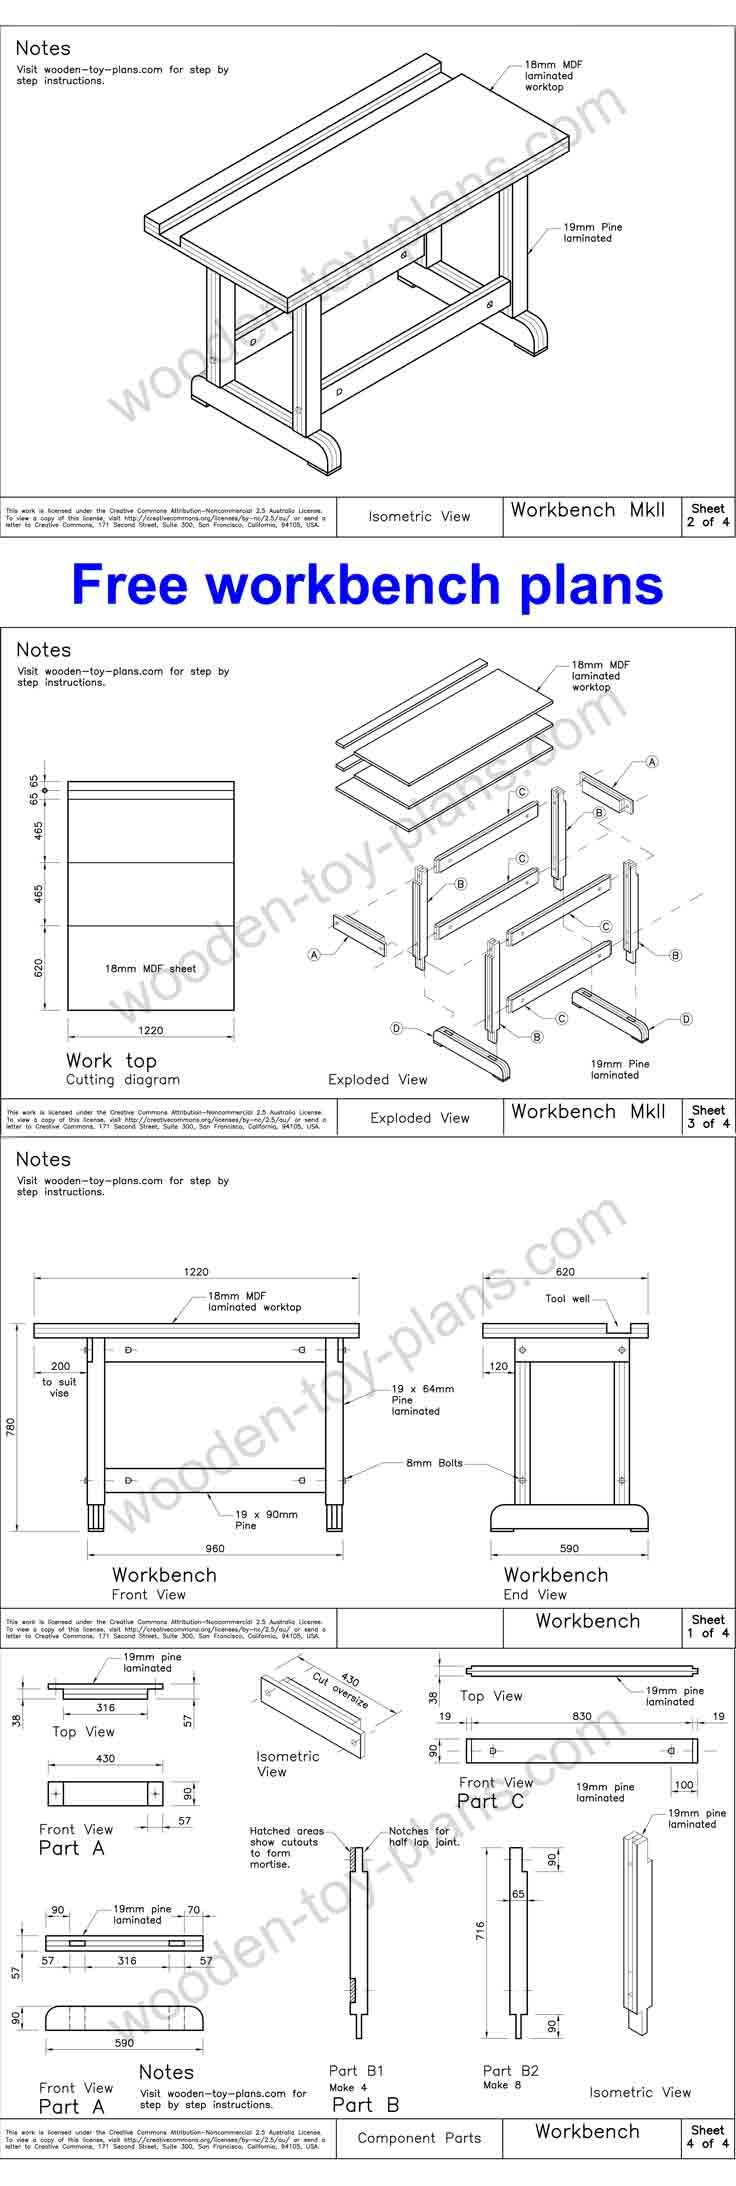 Very solid workbench plans available at no charge….